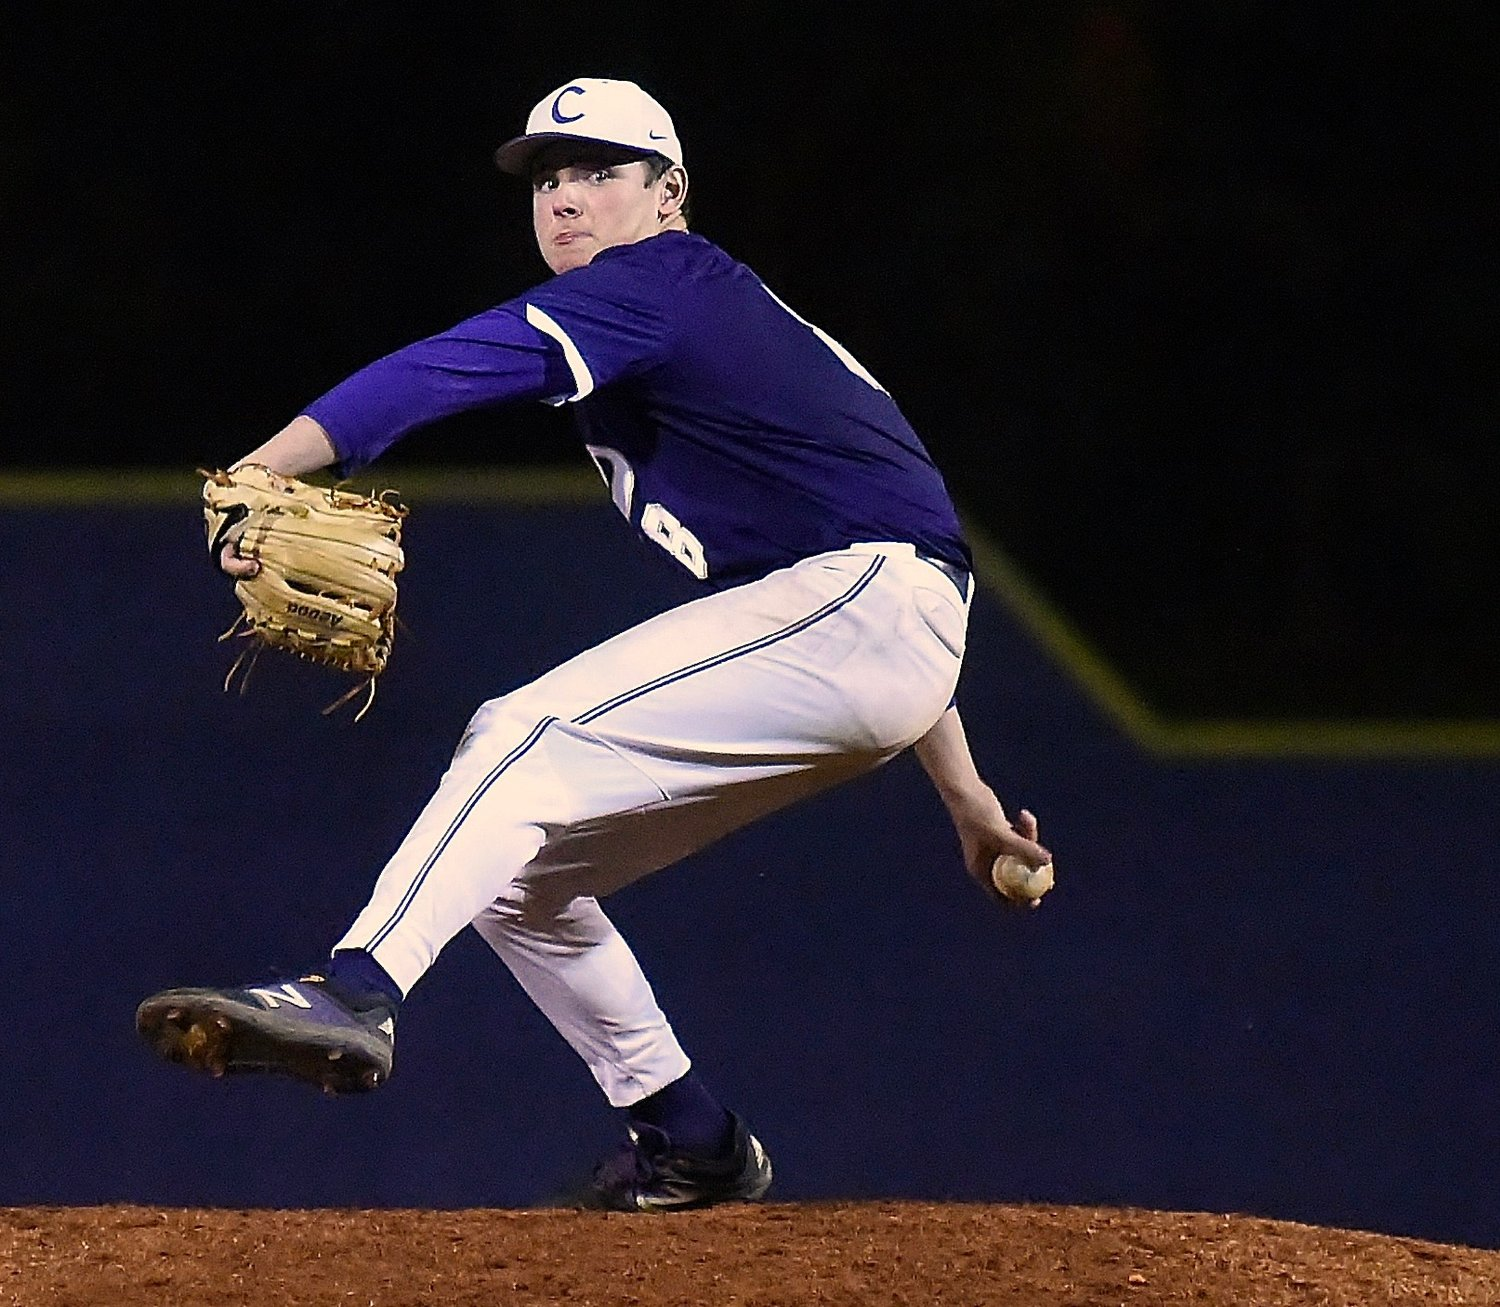 Cartersville senior Logan Martin winds up to deliver a pitch during Game 2 of Wednesday's Class 4A state tournament first-round doubleheader against Oconee County. Martin struck out 11 in a complete-game shutout to help send the Canes to the second round.